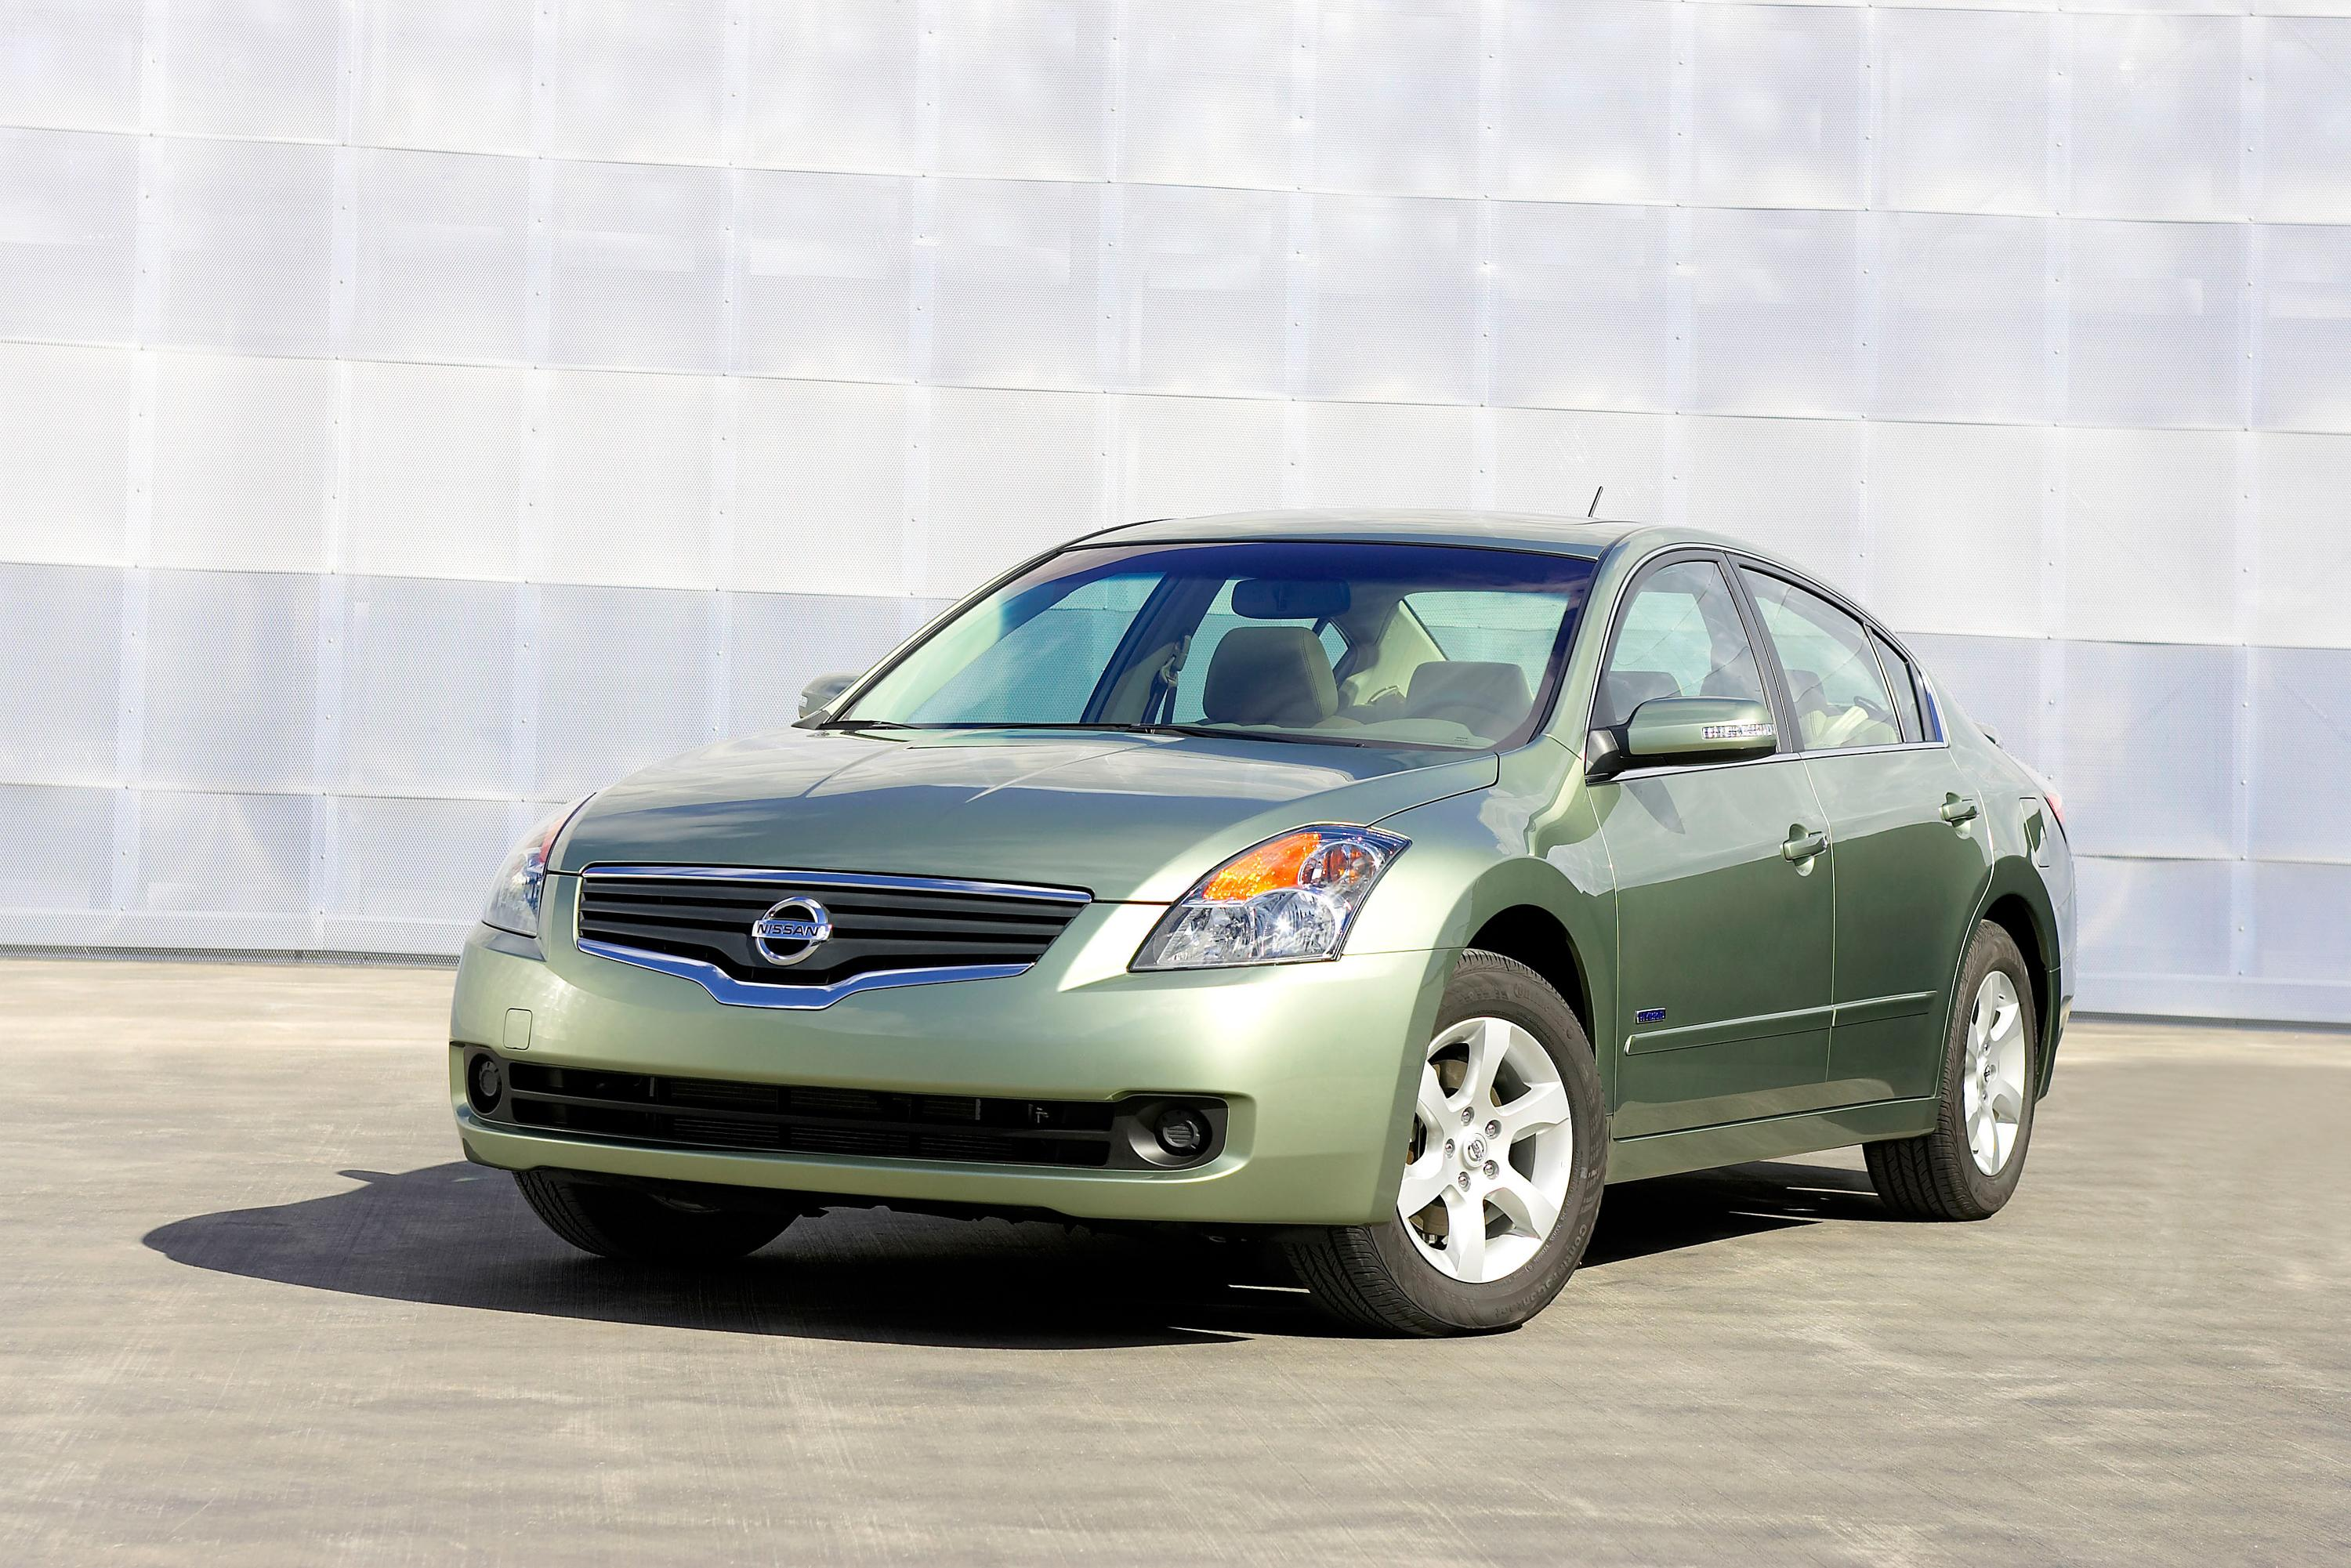 nissan altima hybrid named to top 10 green cars by kelley blue book 39 s. Black Bedroom Furniture Sets. Home Design Ideas